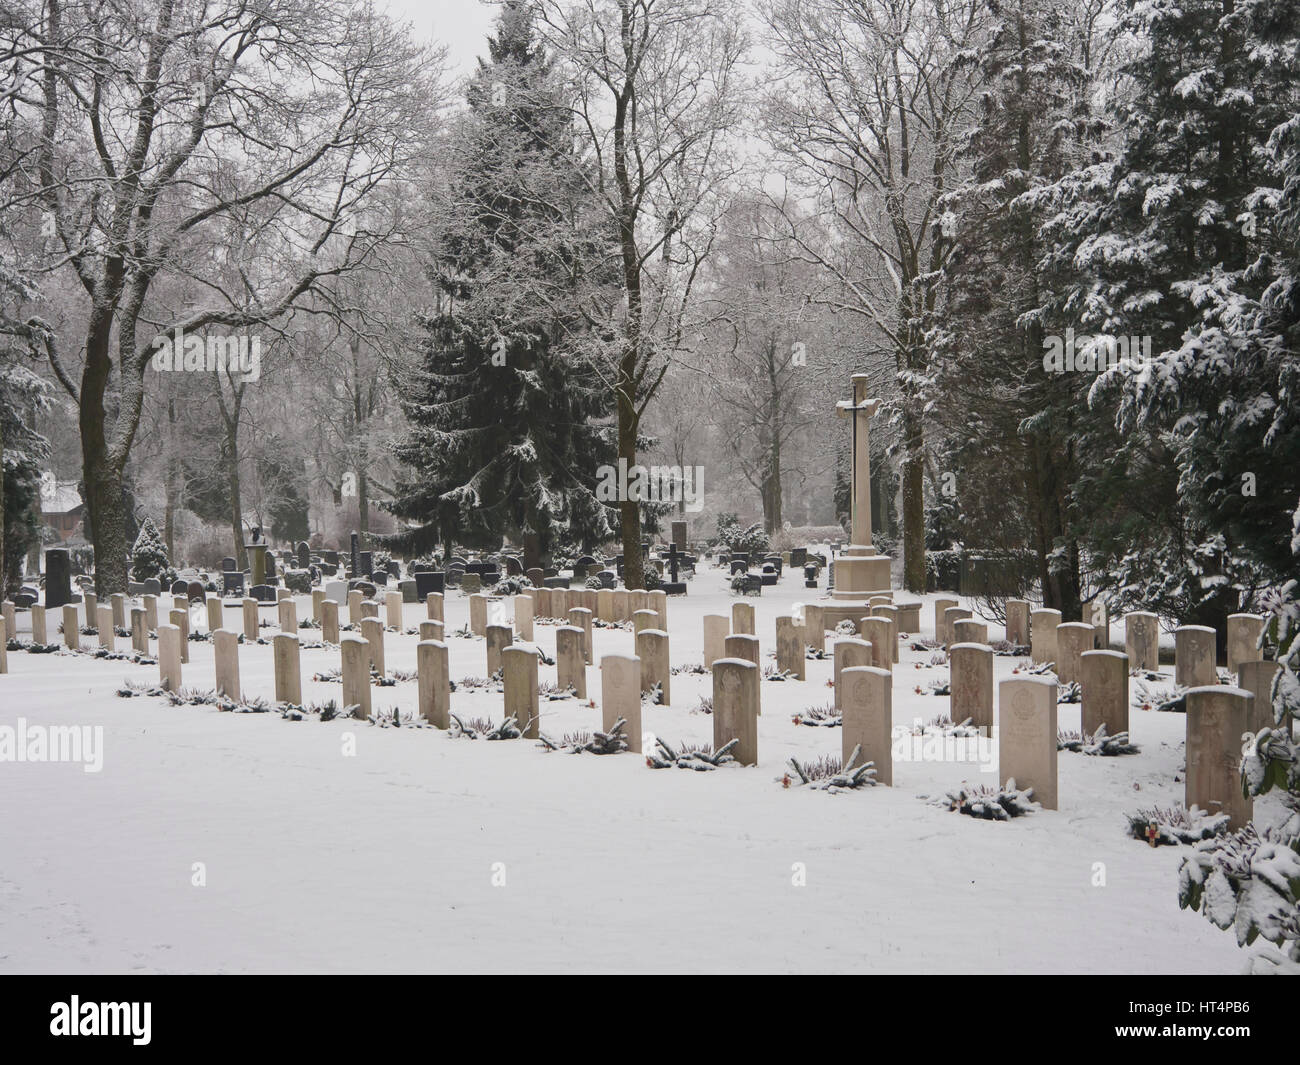 British war graves from WWII has their own section and a tall cross monument at the Vestre Gravlund cemetery in Stock Photo